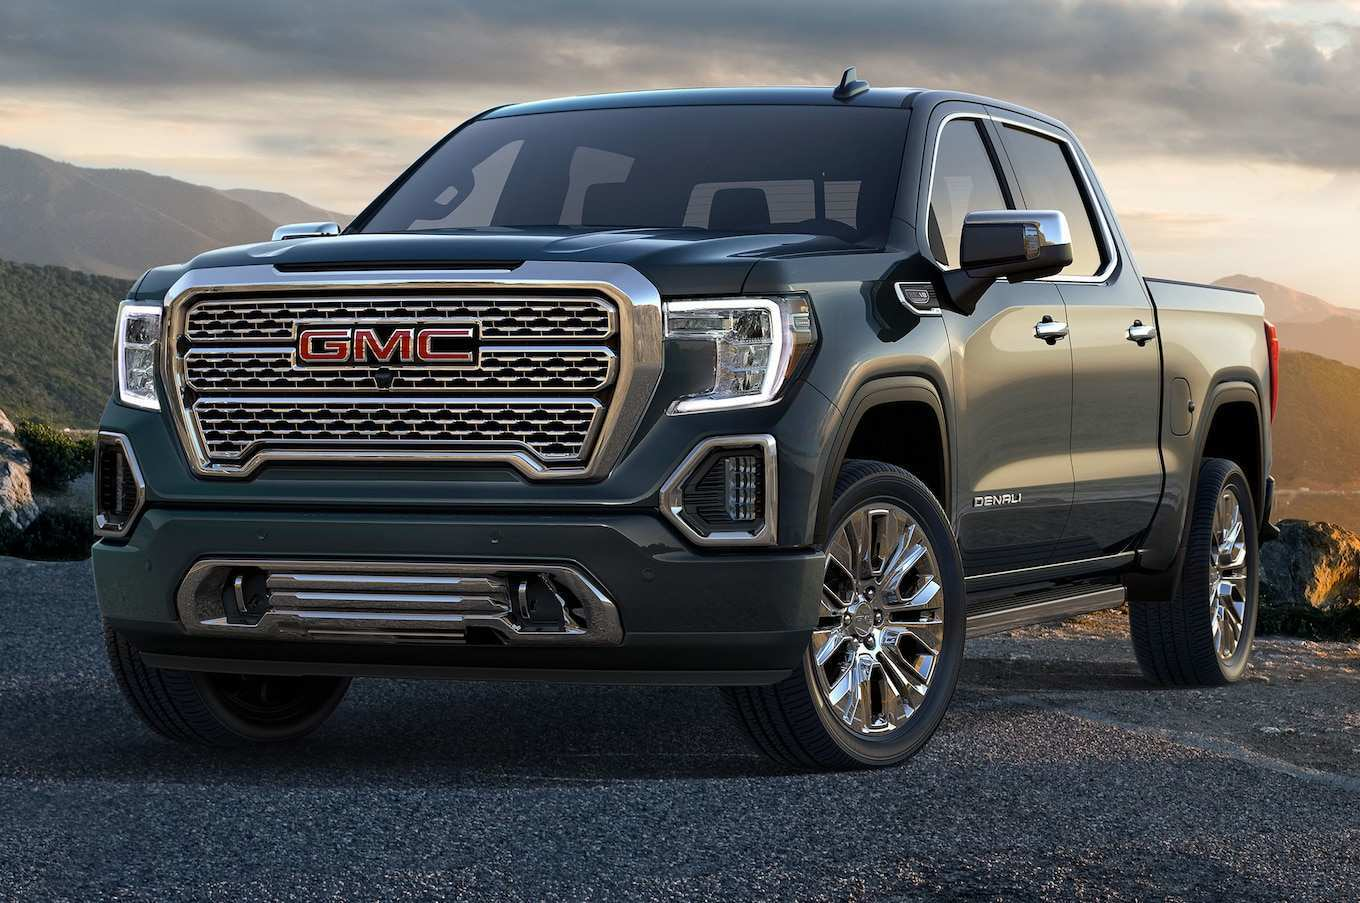 87 Concept of 2019 Gmc Vs Silverado Performance and New Engine by 2019 Gmc Vs Silverado